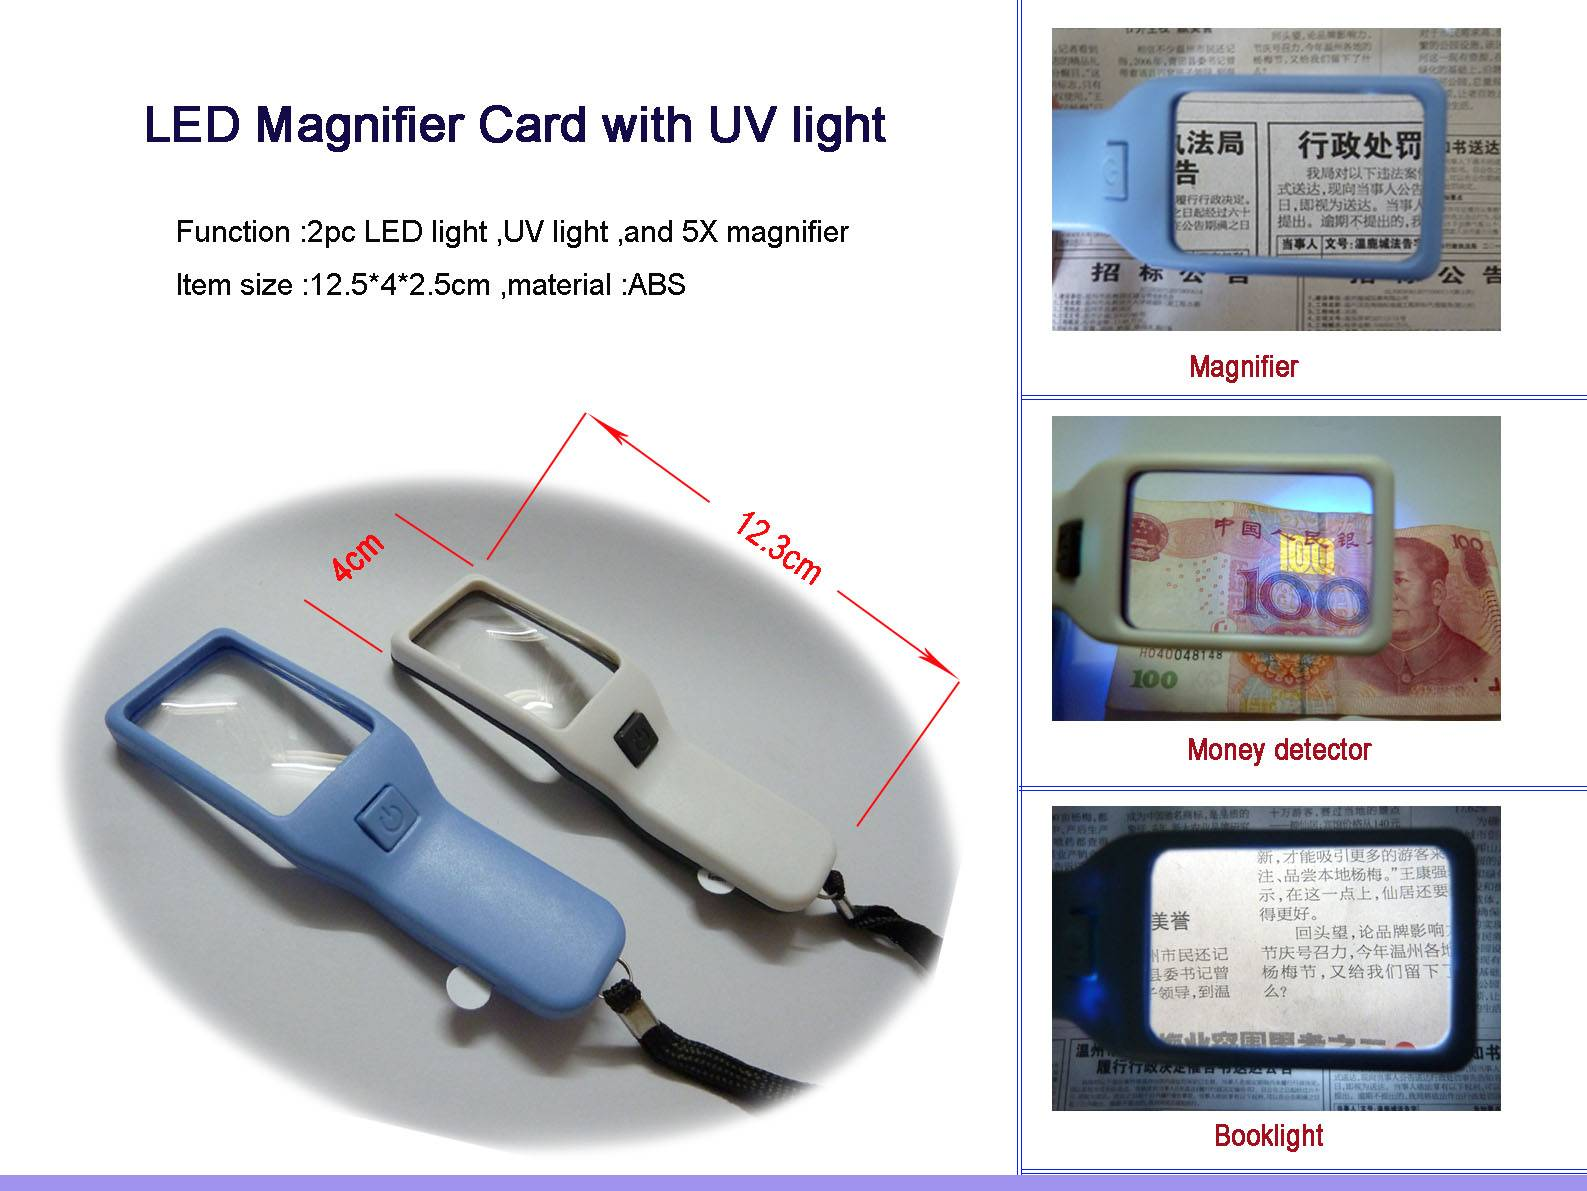 LED Magnifier Card with UV light